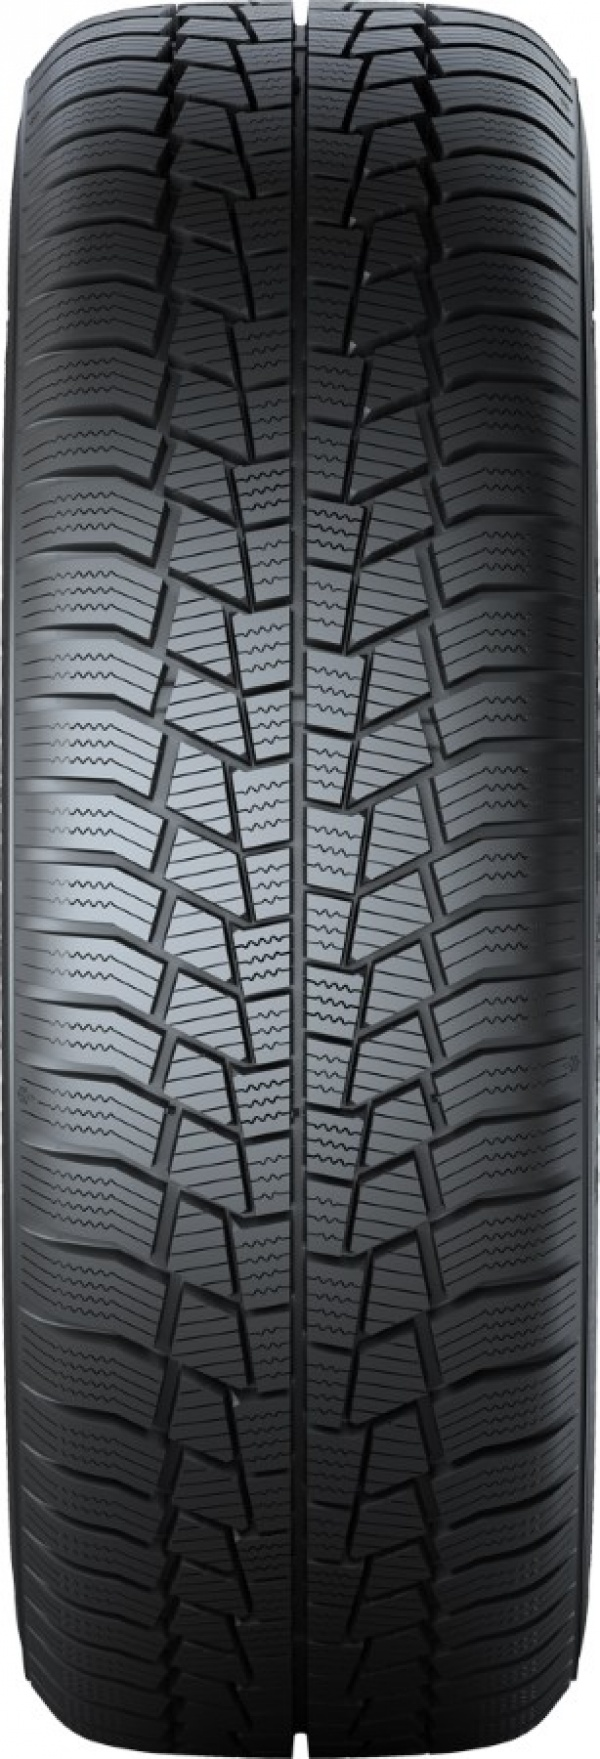 Gislaved Euro Frost 6 225/50 R17 98V  не шип